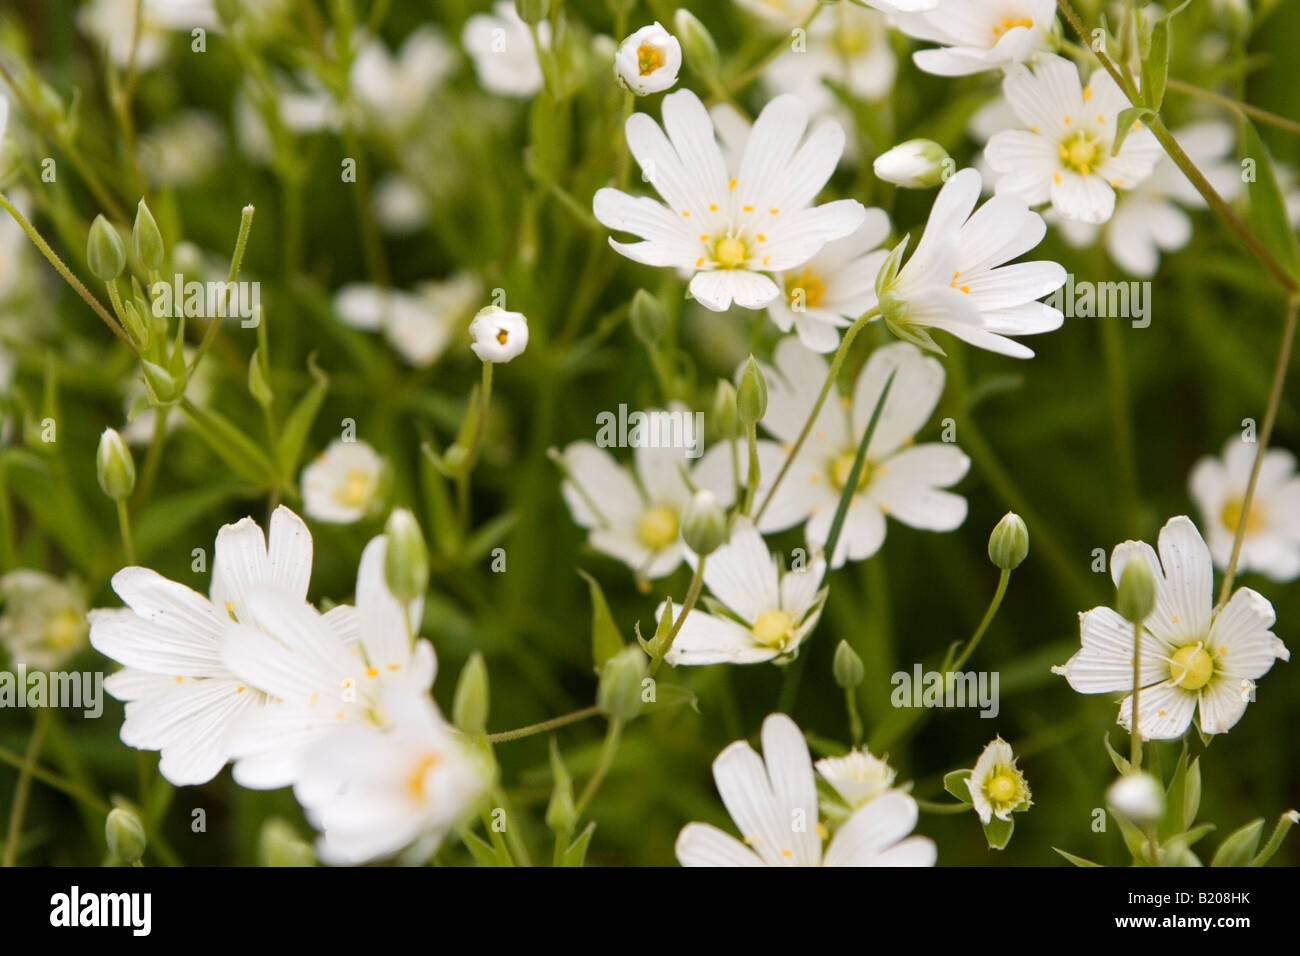 White daisy like flowers thriving in north east england stock photo white daisy like flowers thriving in north east england izmirmasajfo Images